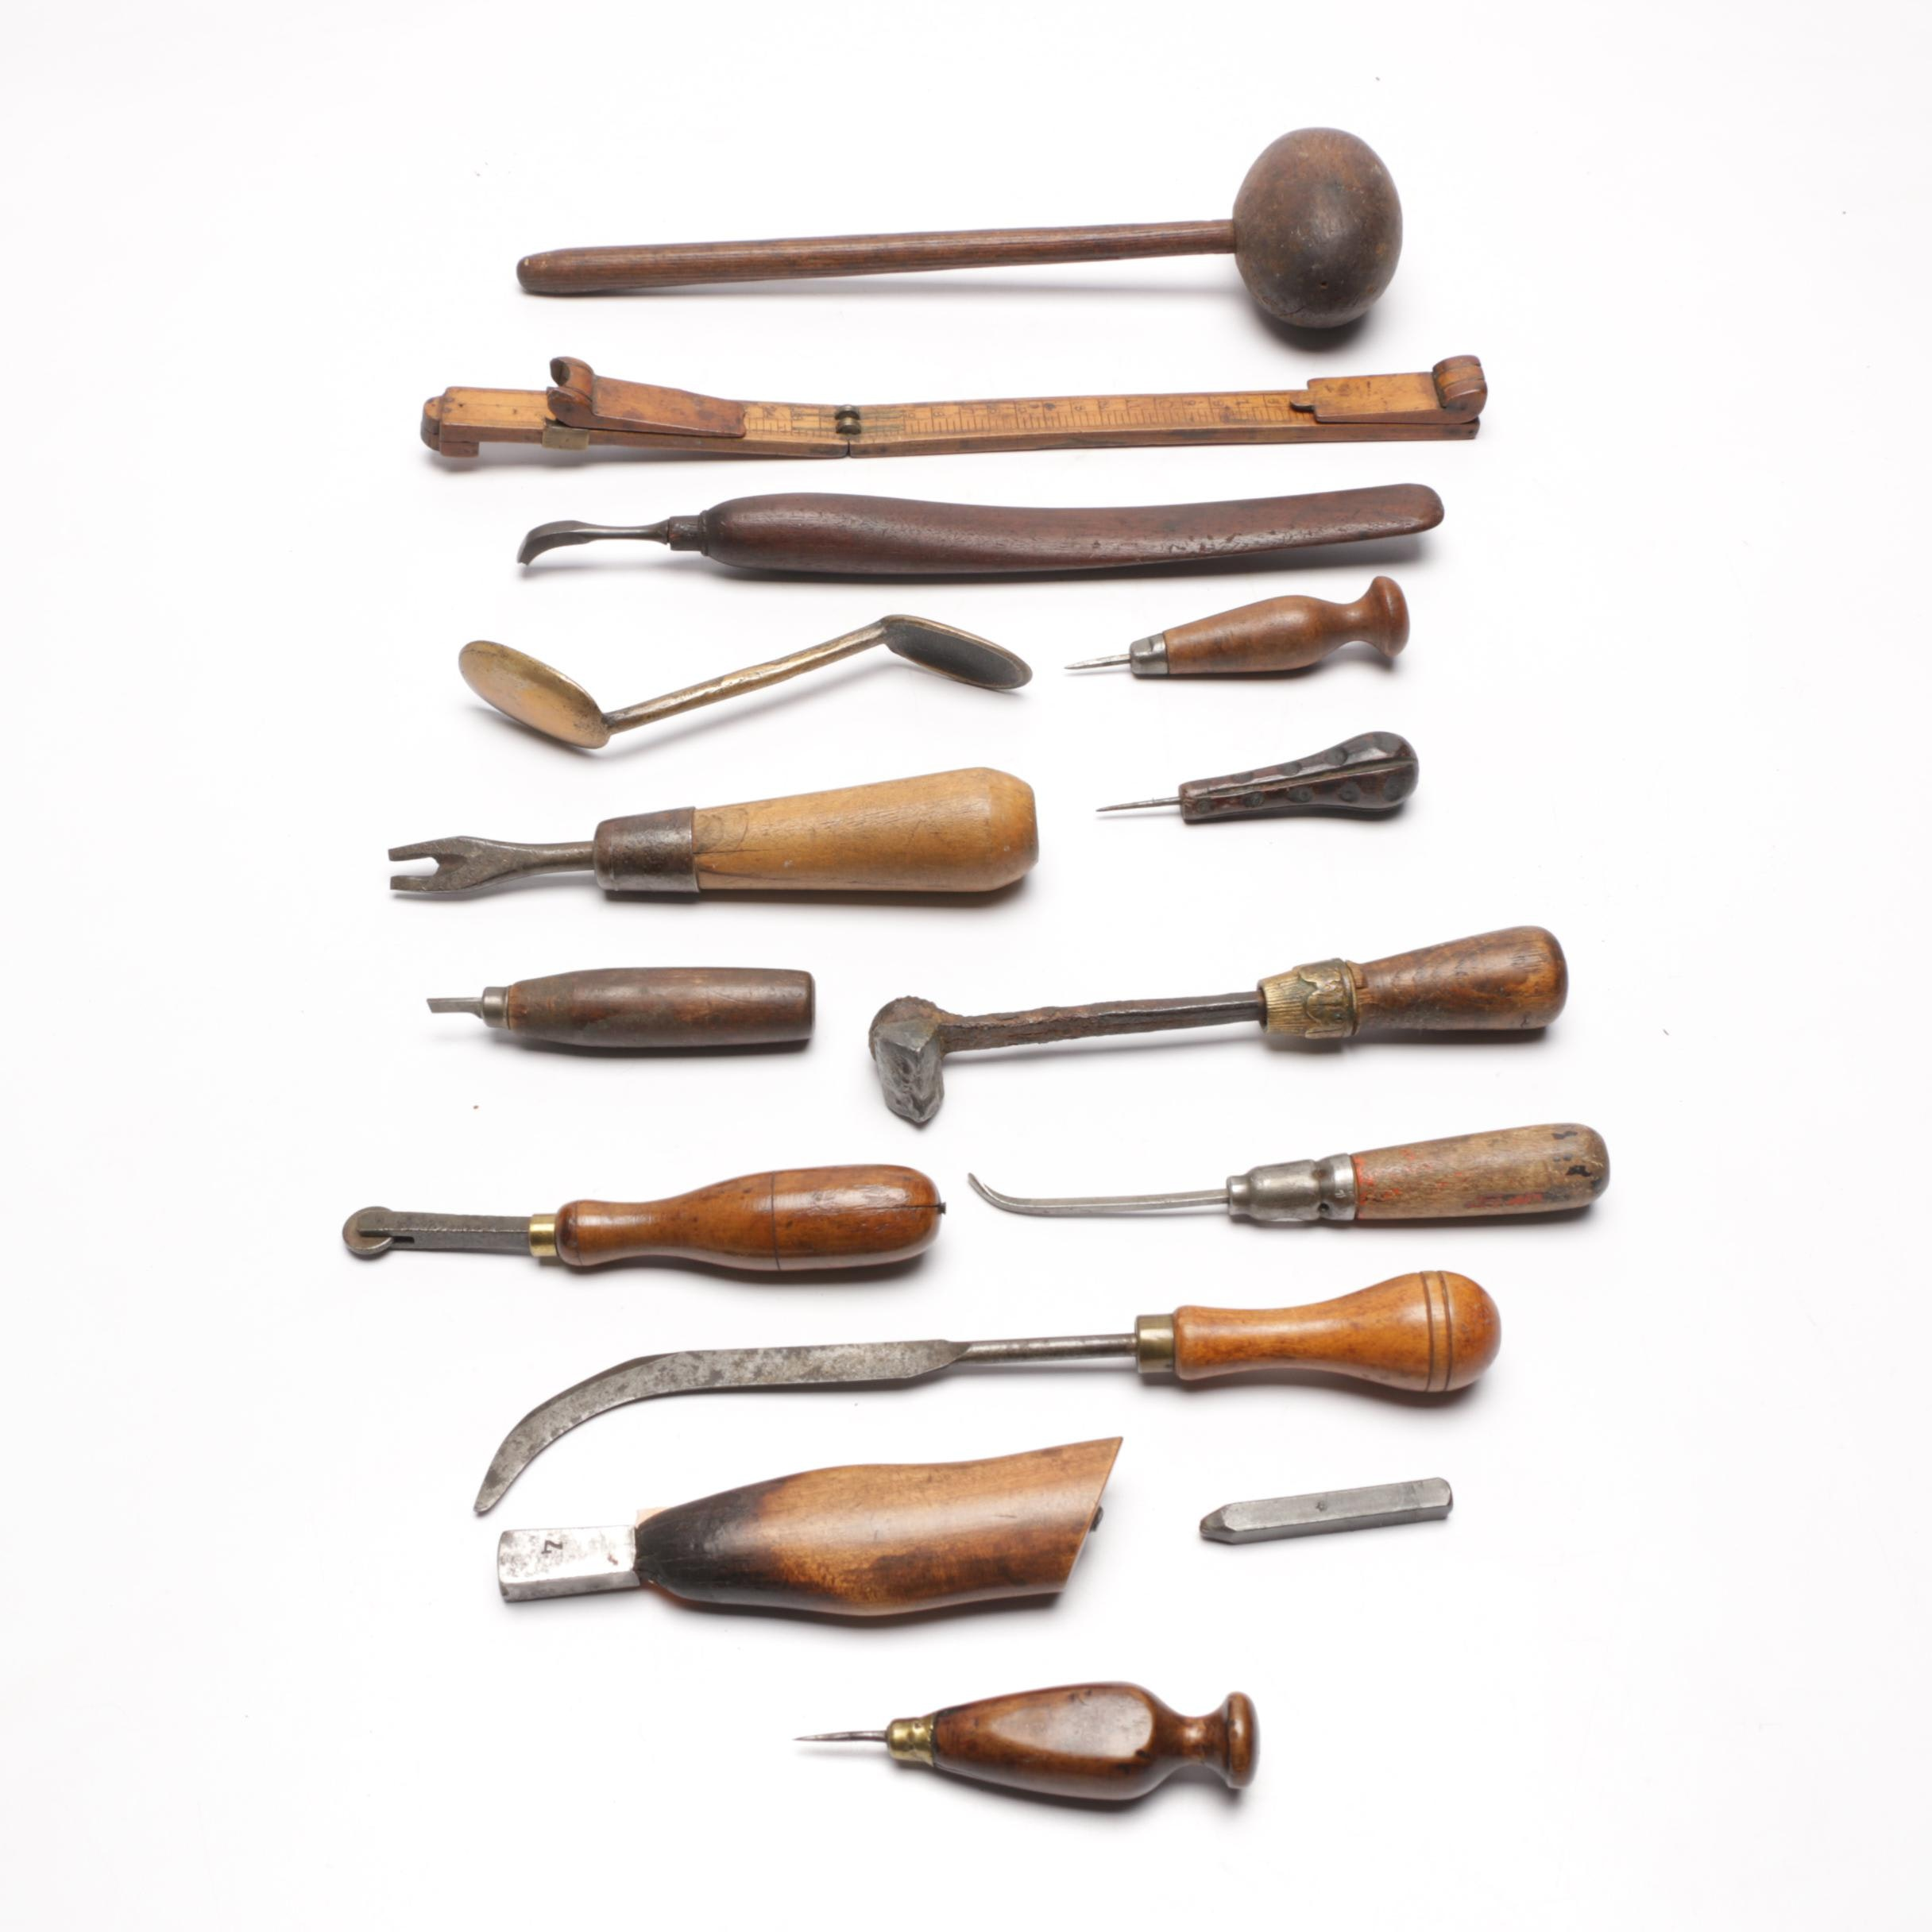 Vintage Leather Working and Cobbler Tools